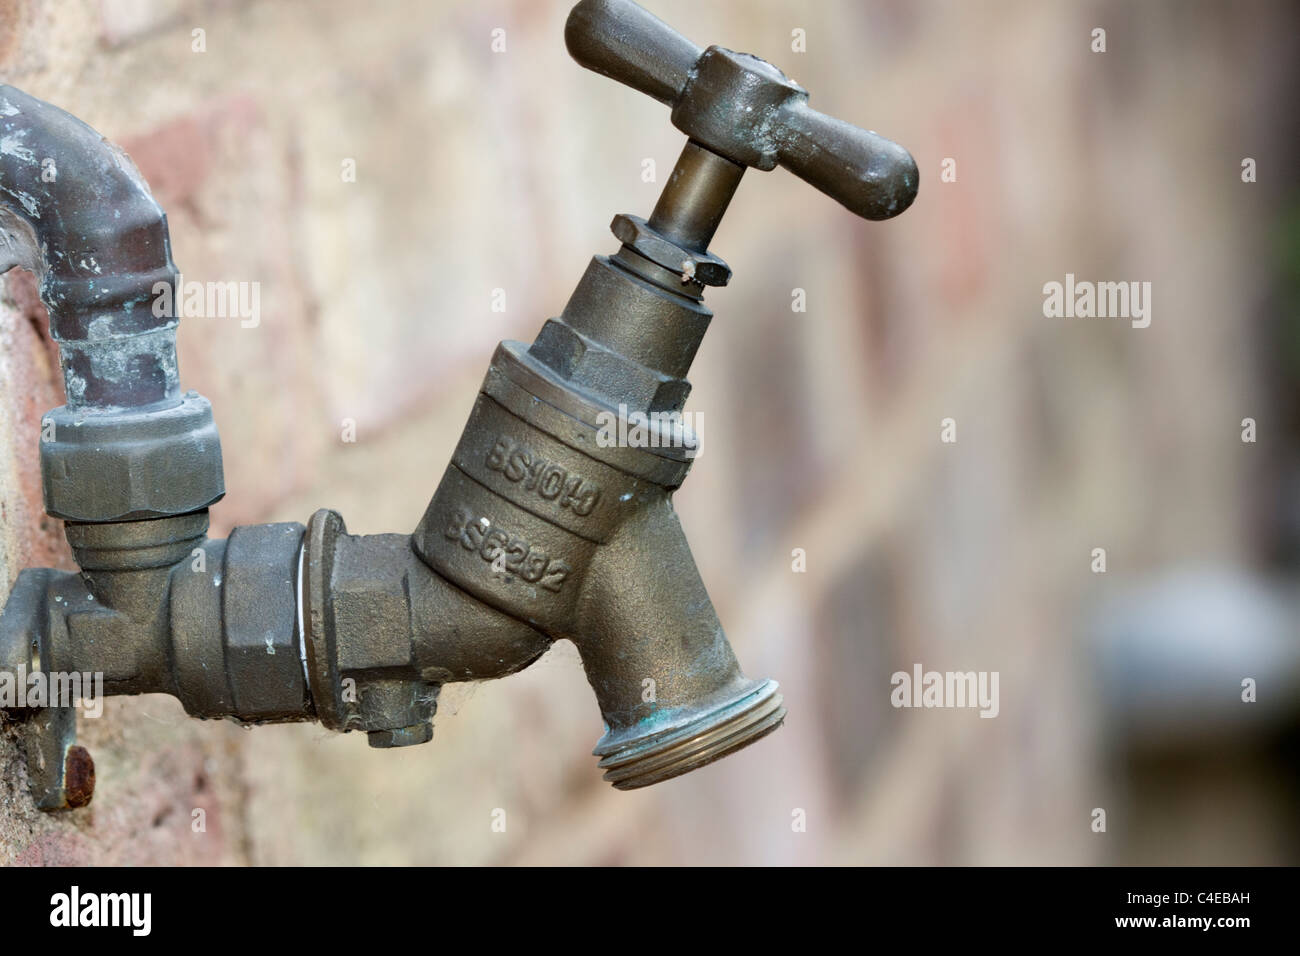 Outside garden tap, turned off - Stock Image